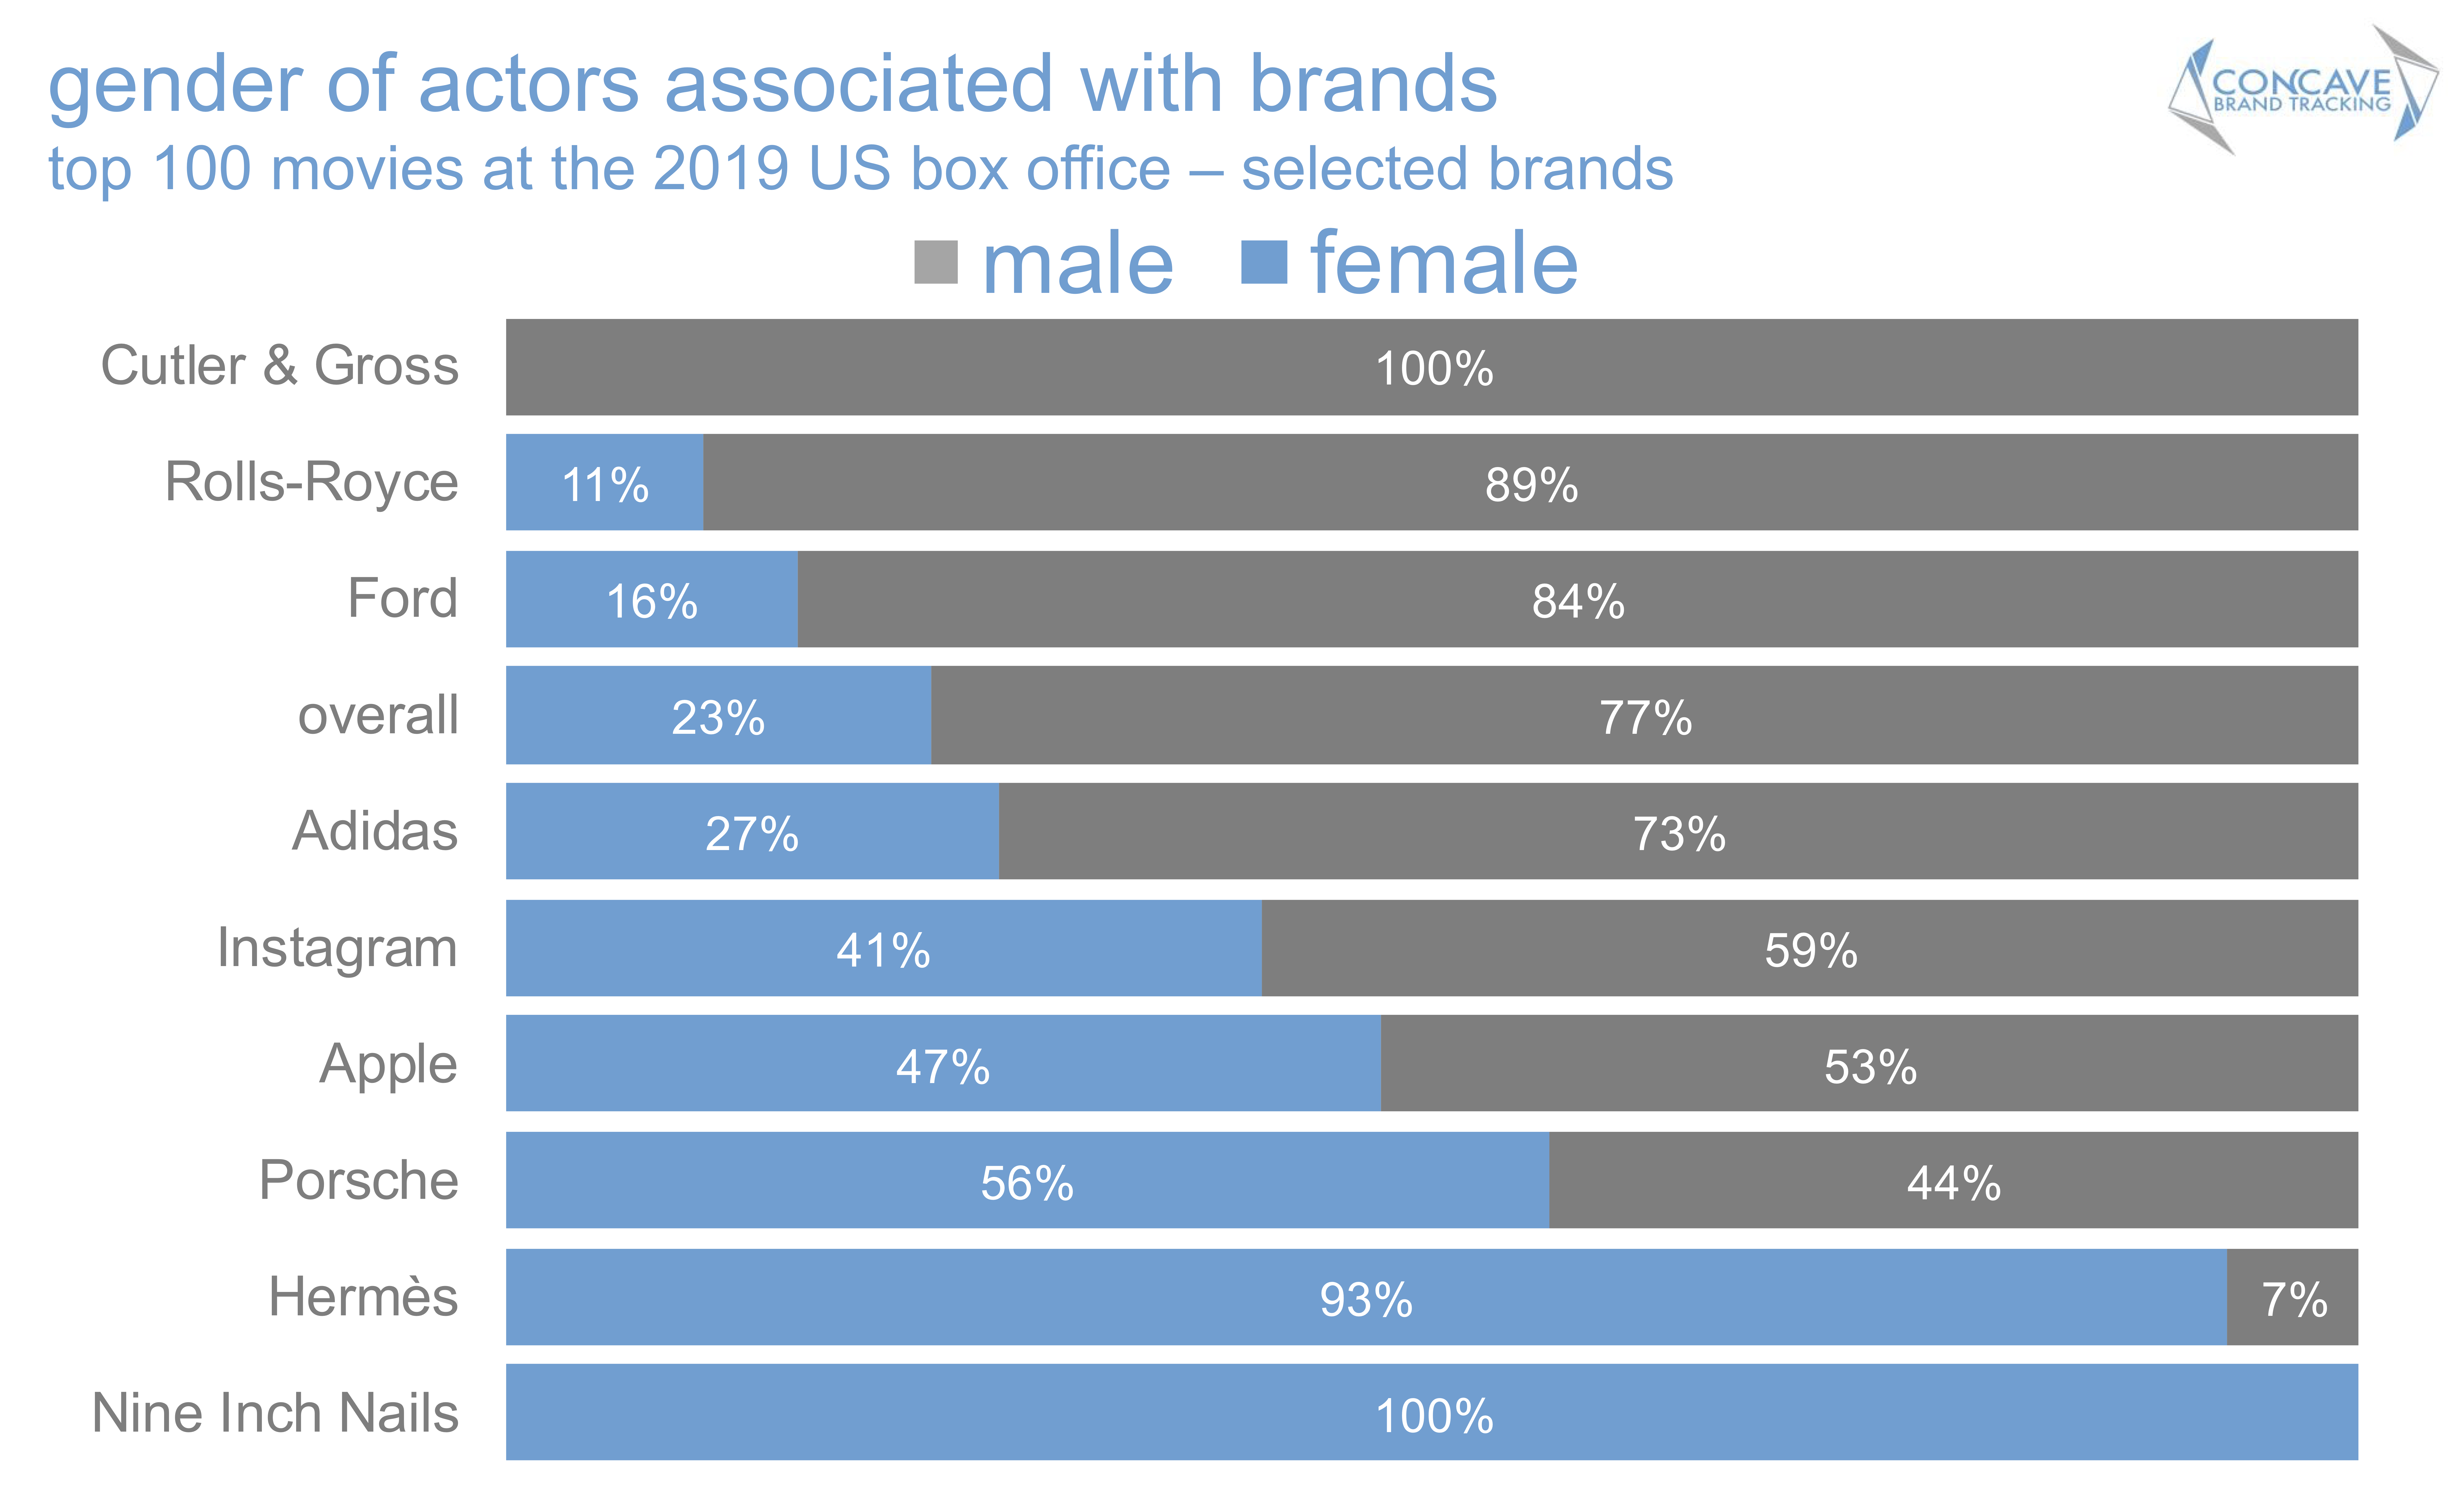 Concave brand tracking, product placement, brands, movies, entertainment marketing, branded integration, brand integration, integration marketing, analysis, valuation, metrics, measurement, concave, Ford, demographics, gender